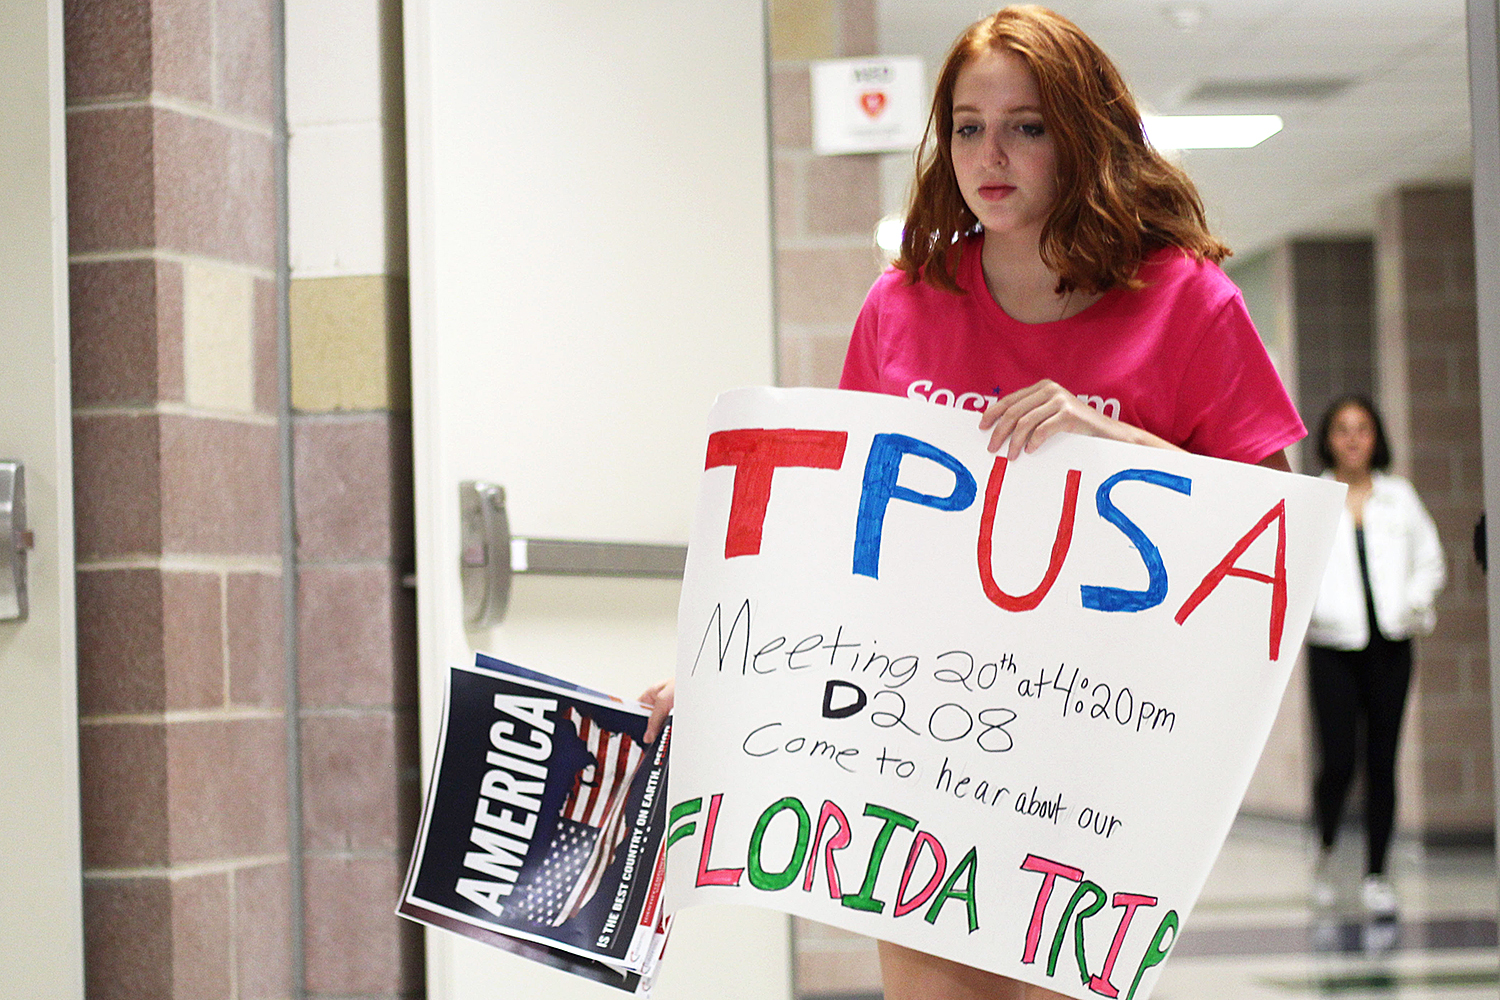 Sophomore Ariel Feldman hangs posters for the new Turning Point USA club before school on Wednesday, Sept. 12.